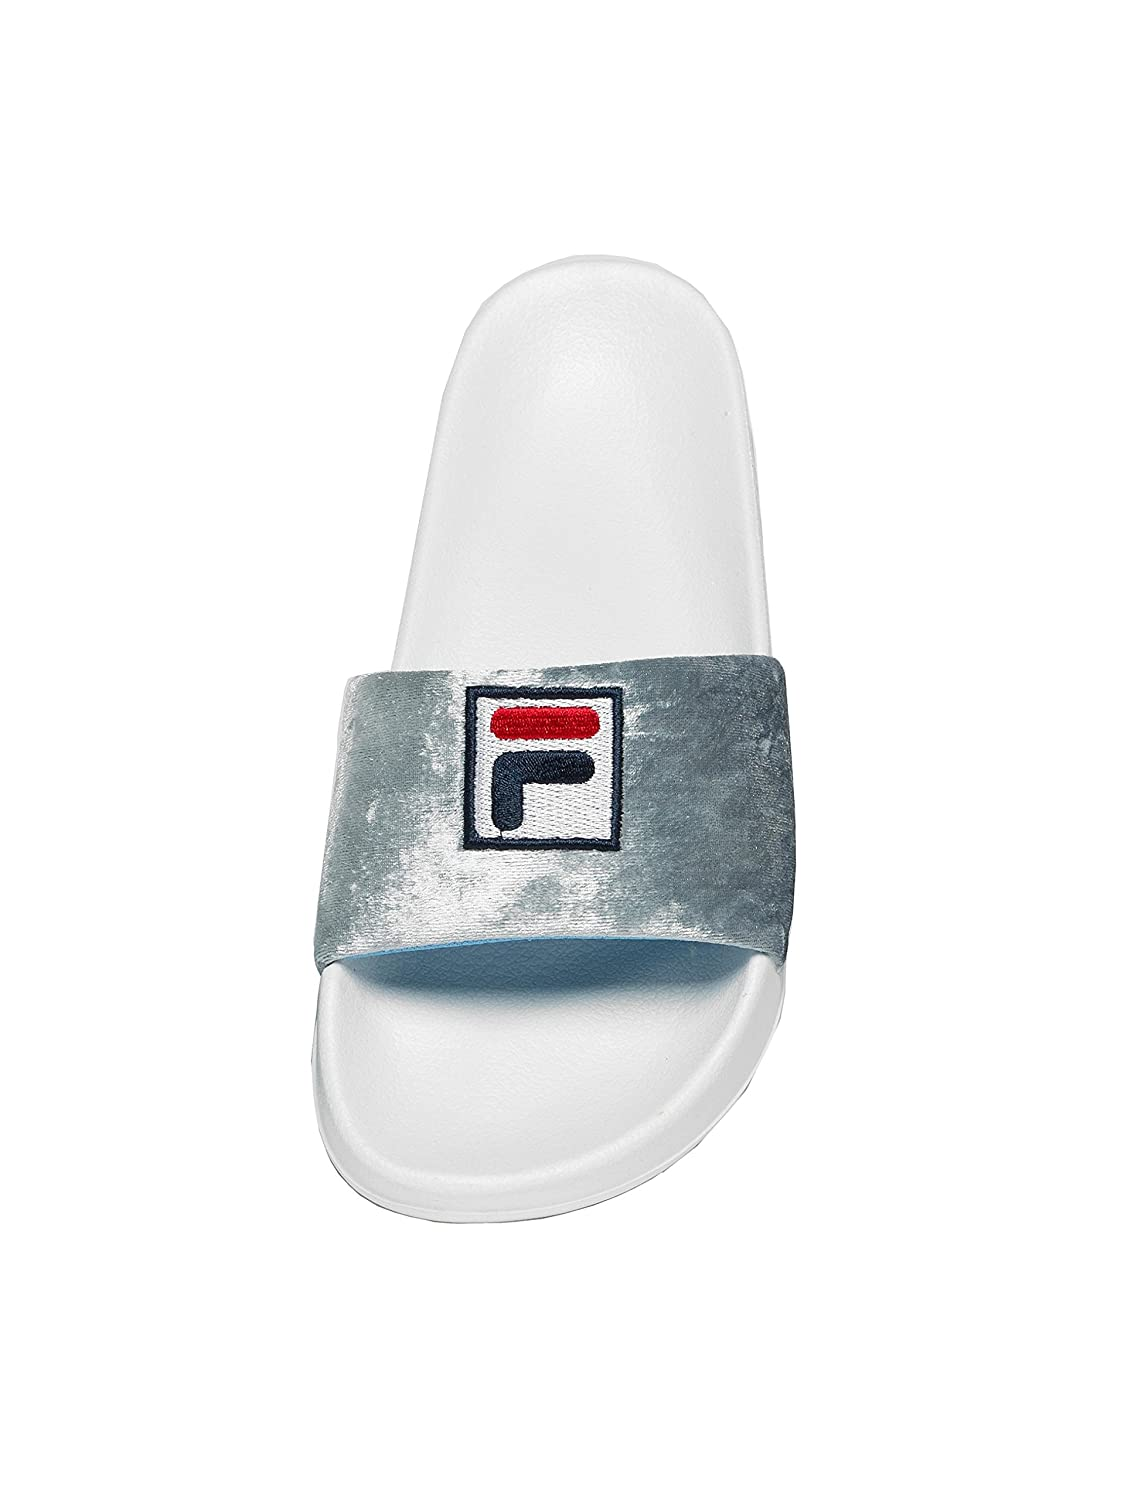 Fila Mujeres Calzado/Chanclas/Sandalias Base Palm Beach V 1010342-ANGEL